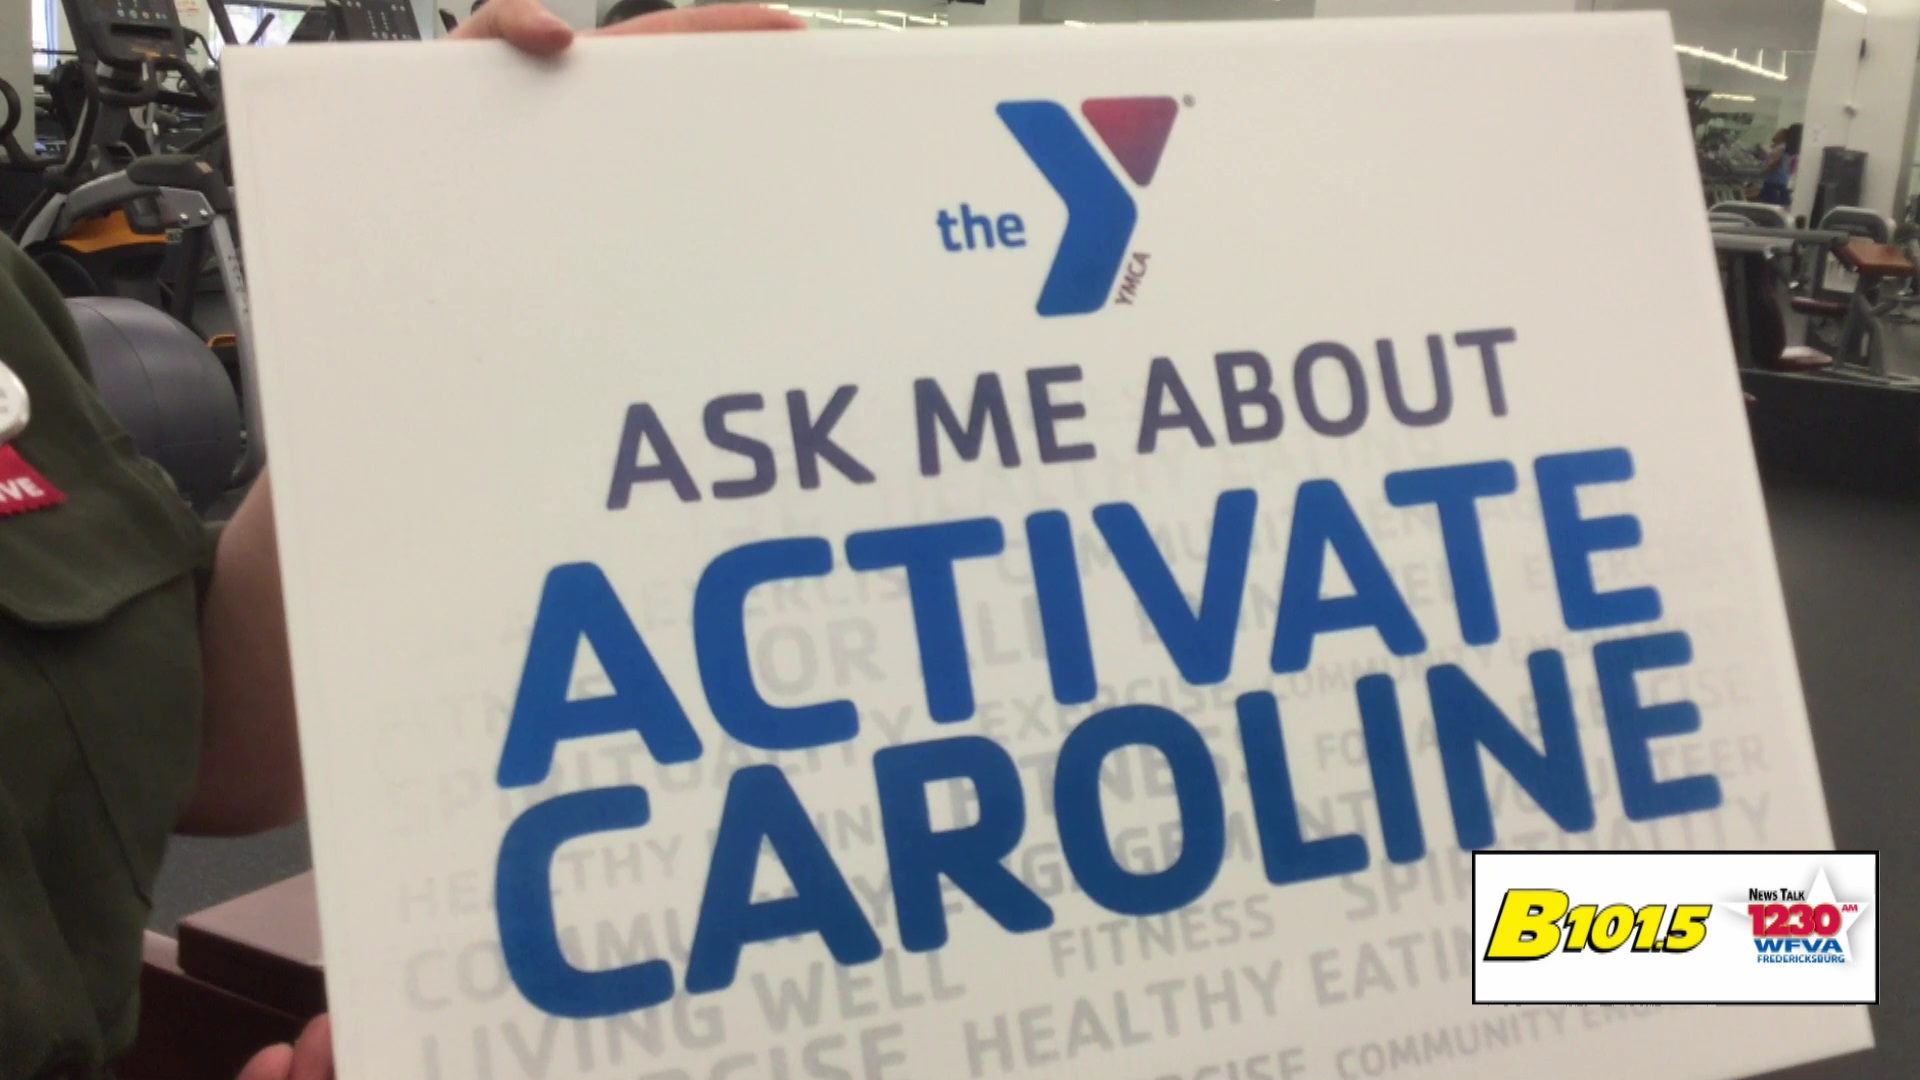 Activate Caroline:  It's about improving all areas of physical and mental health